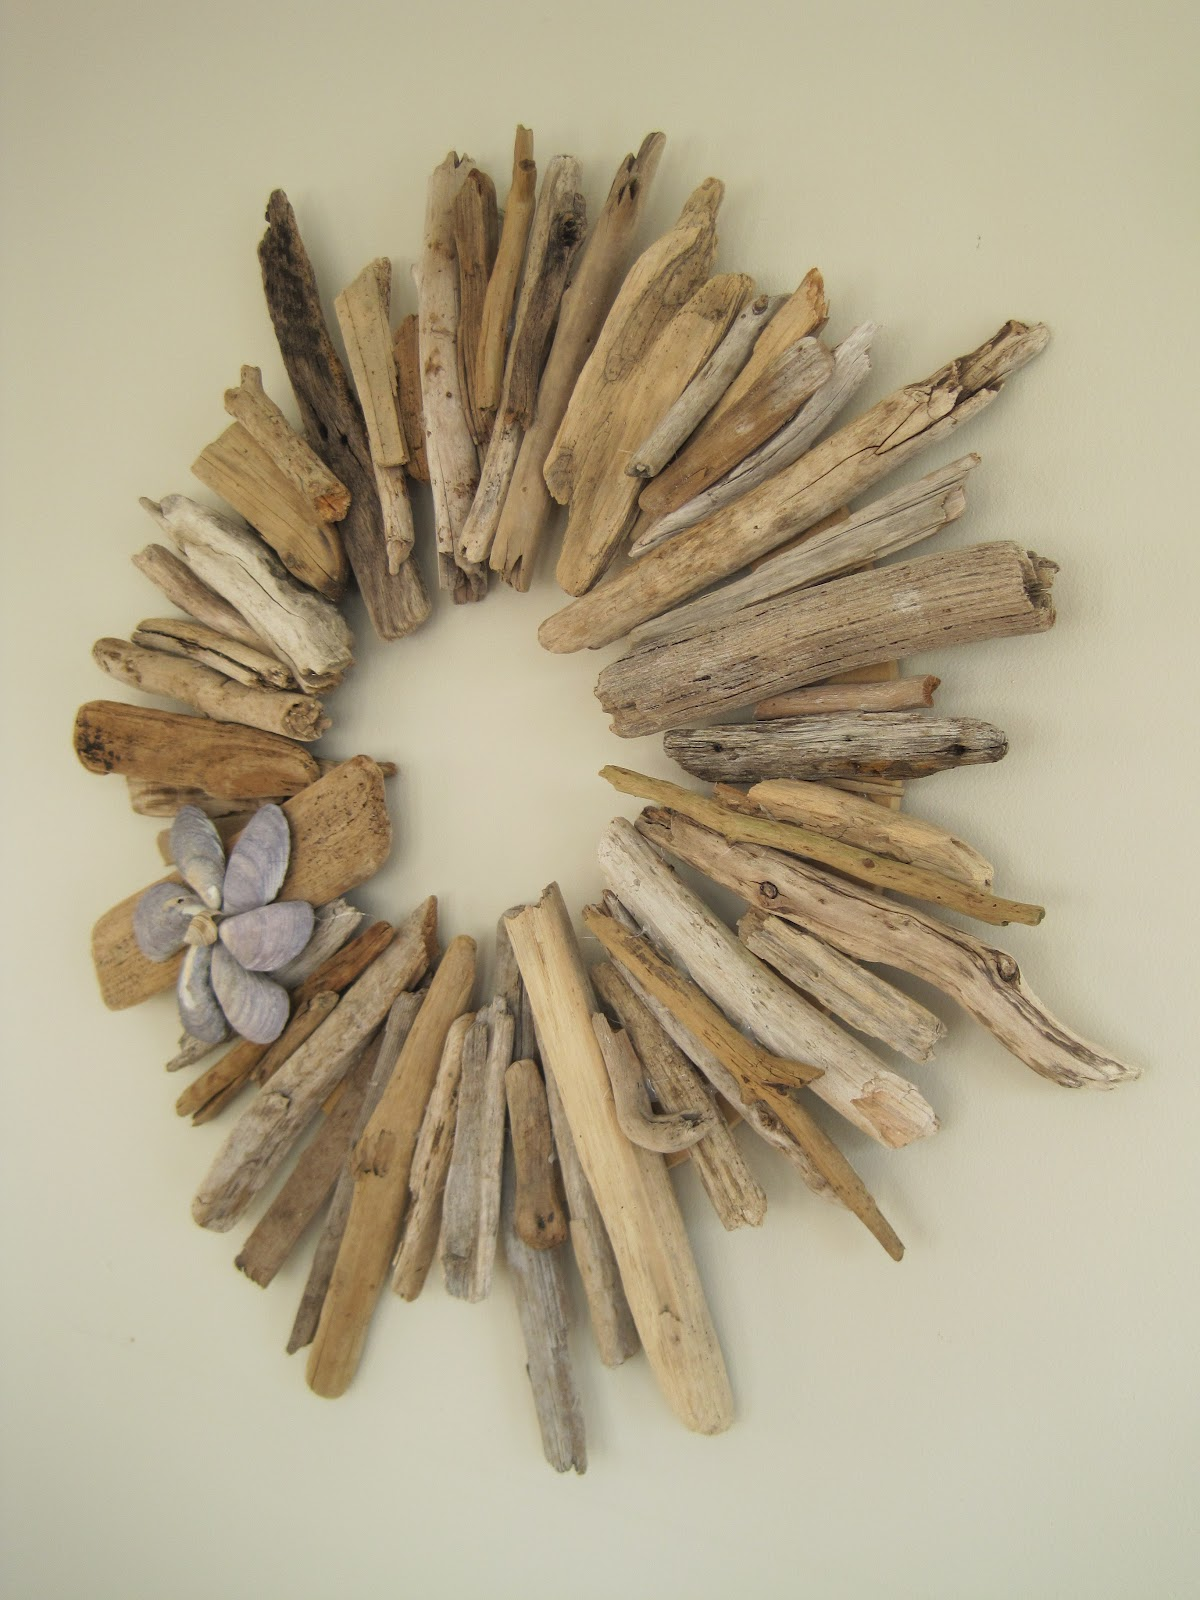 Local Color Making A Drift Wood Wreath. Contemporary Chandeliers For Foyer. Tree Branch Chandelier. Crystal Ball Chandelier. House Architects. Ikea Bathroom Vanities. House Decorating Ideas. Foot Stools. Outdoor Projects